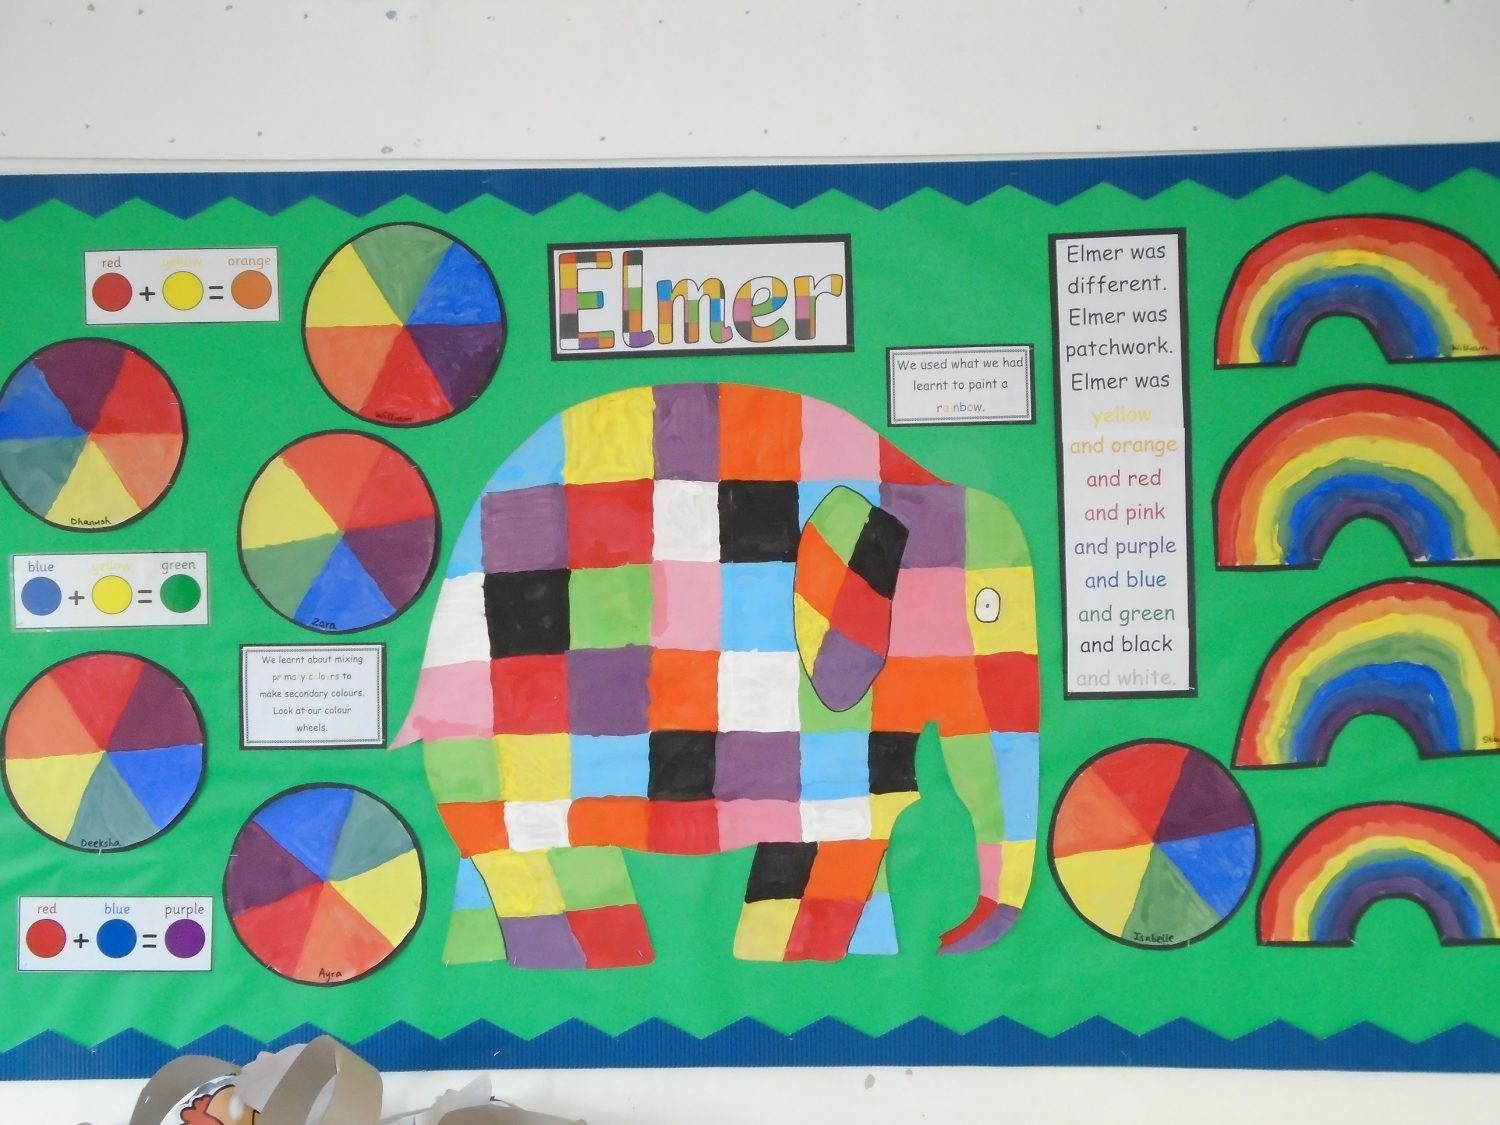 elmer display 001a